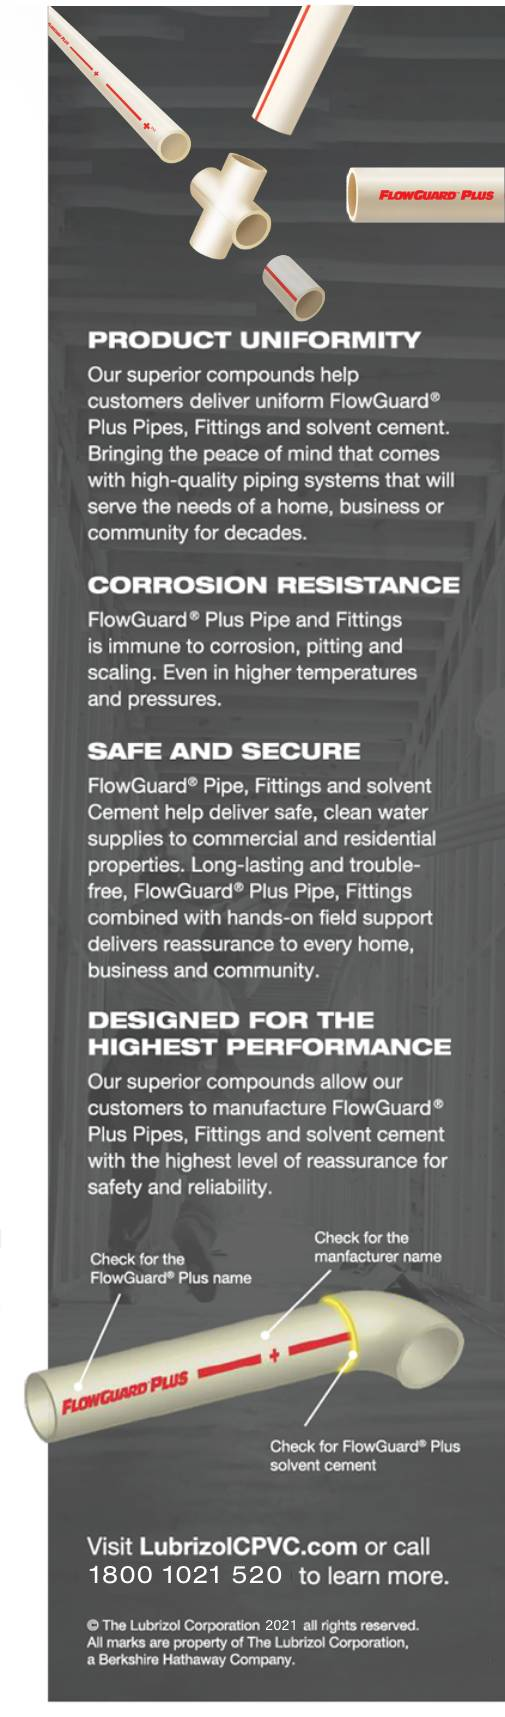 flowguard plus cpvc fittings, pipes and solvent information